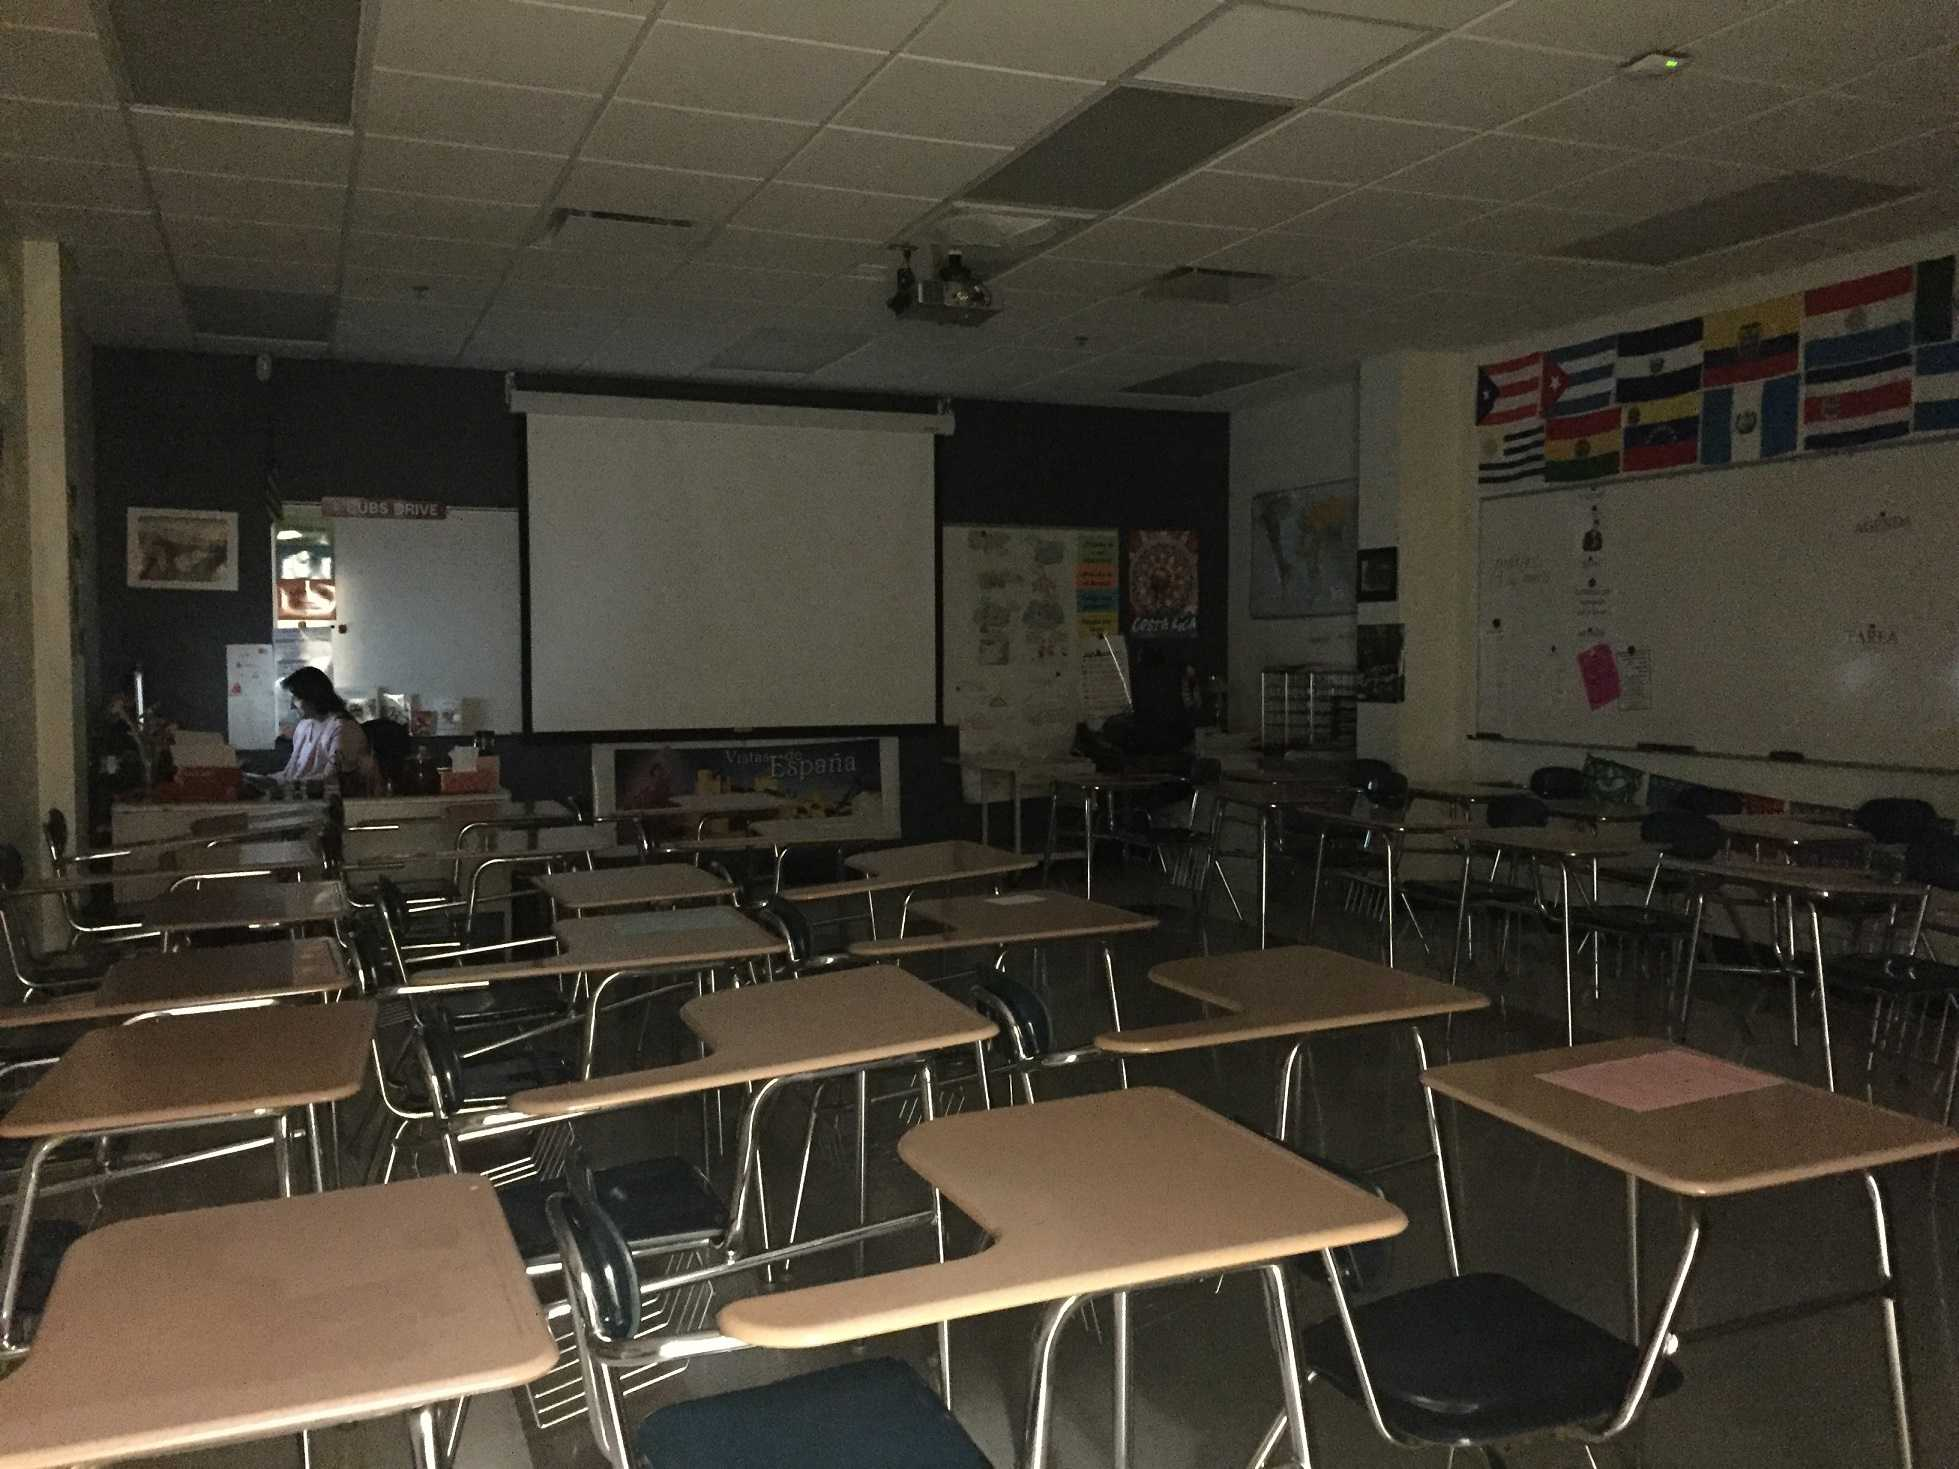 Students forced to leave windowless classrooms so teachers are still able to teach.